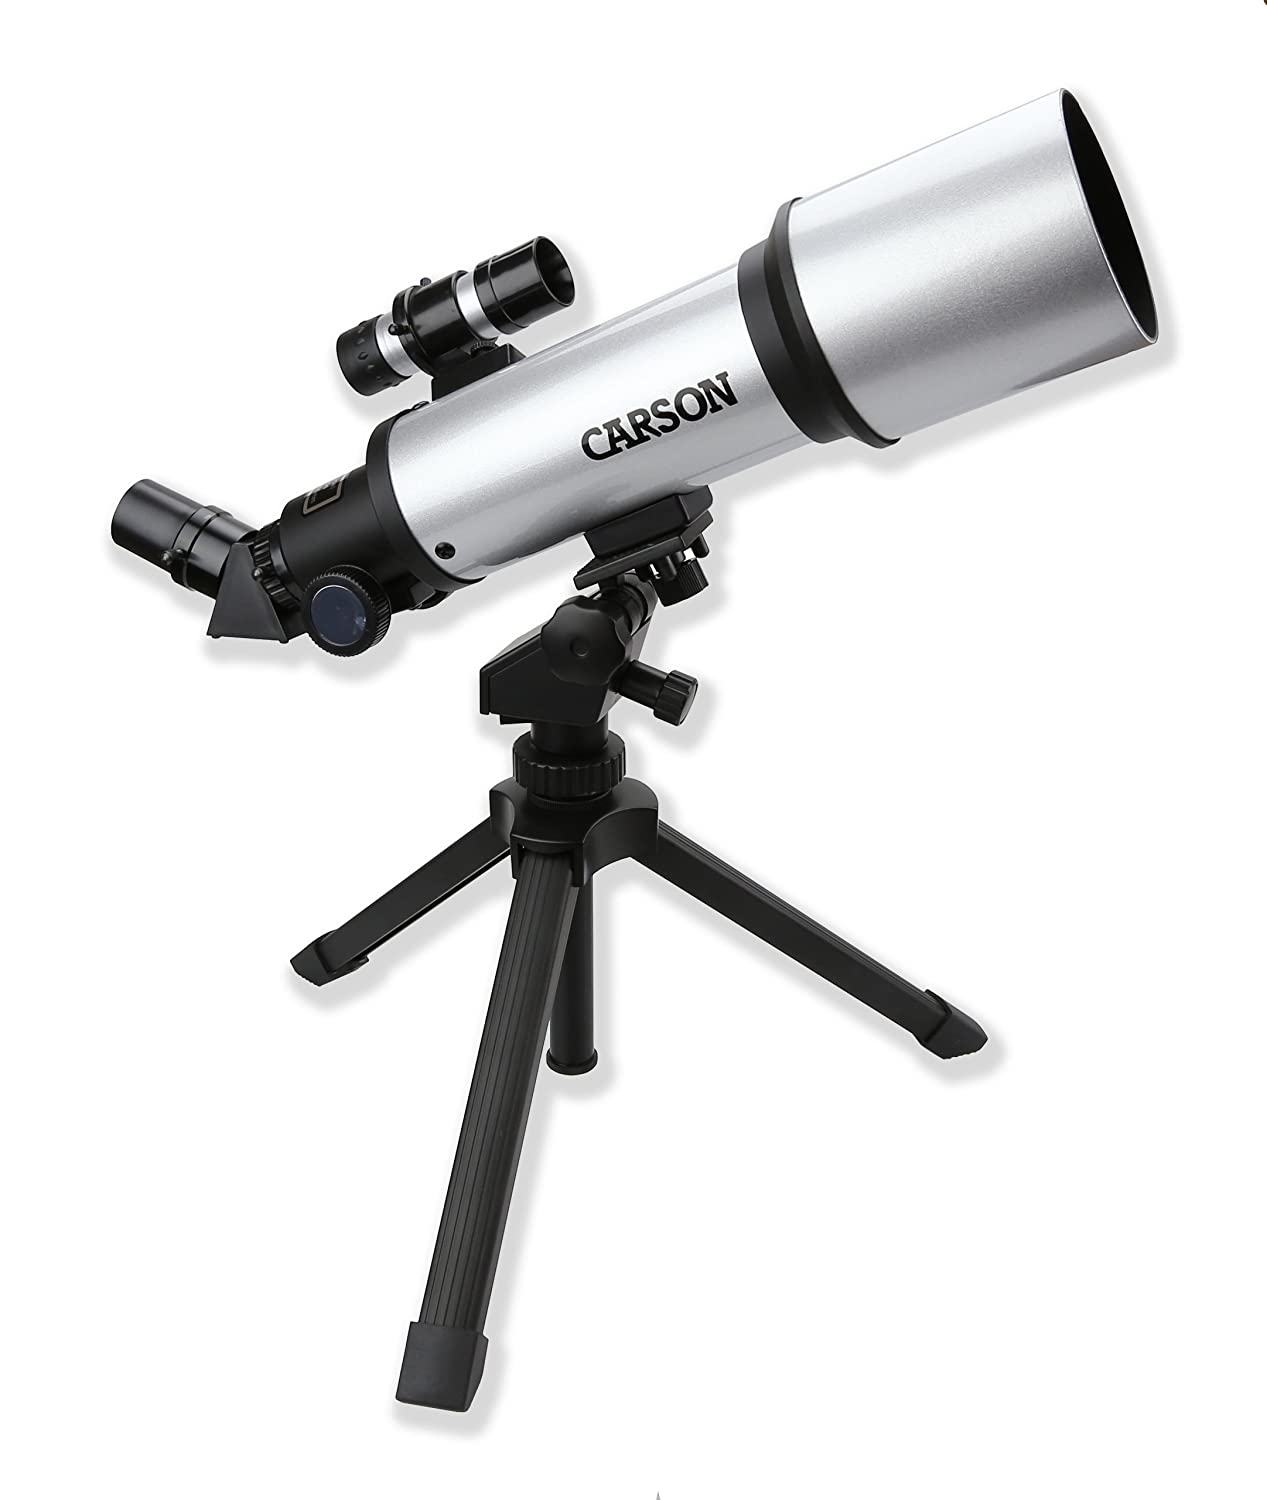 Amazon.com : Carson SkyRunner 16x-133x Power 70mm Short Tube Wide Angle  Refractor Telescope (SV-350) : Refracting Telescopes : Camera & Photo